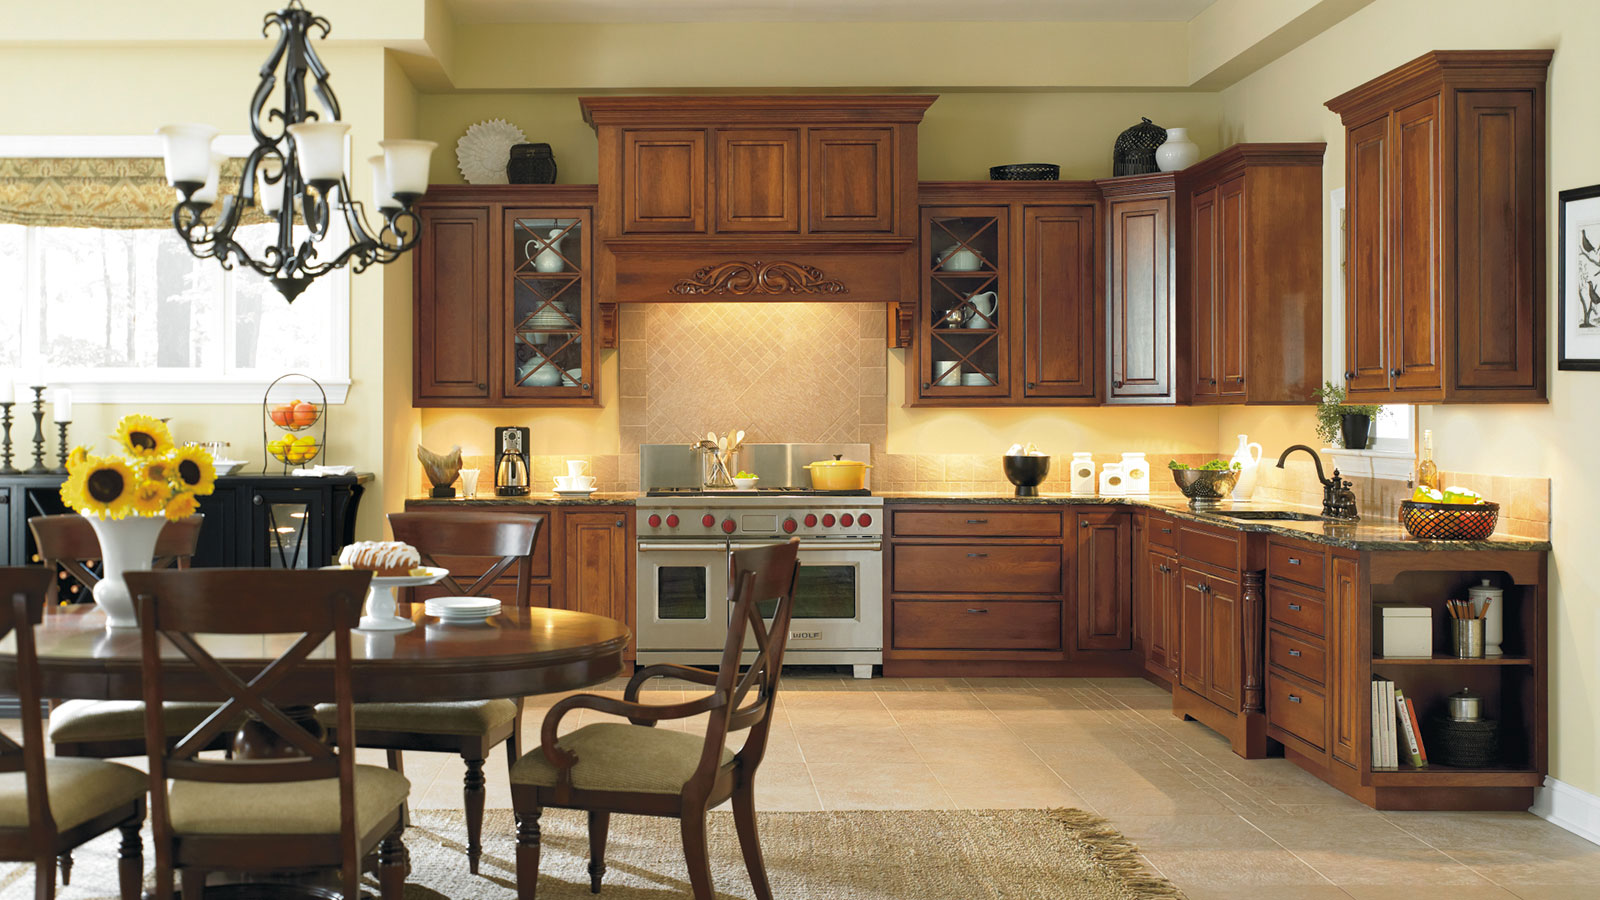 omega kitchen cabinets bronze pendant lighting inset cabinetry